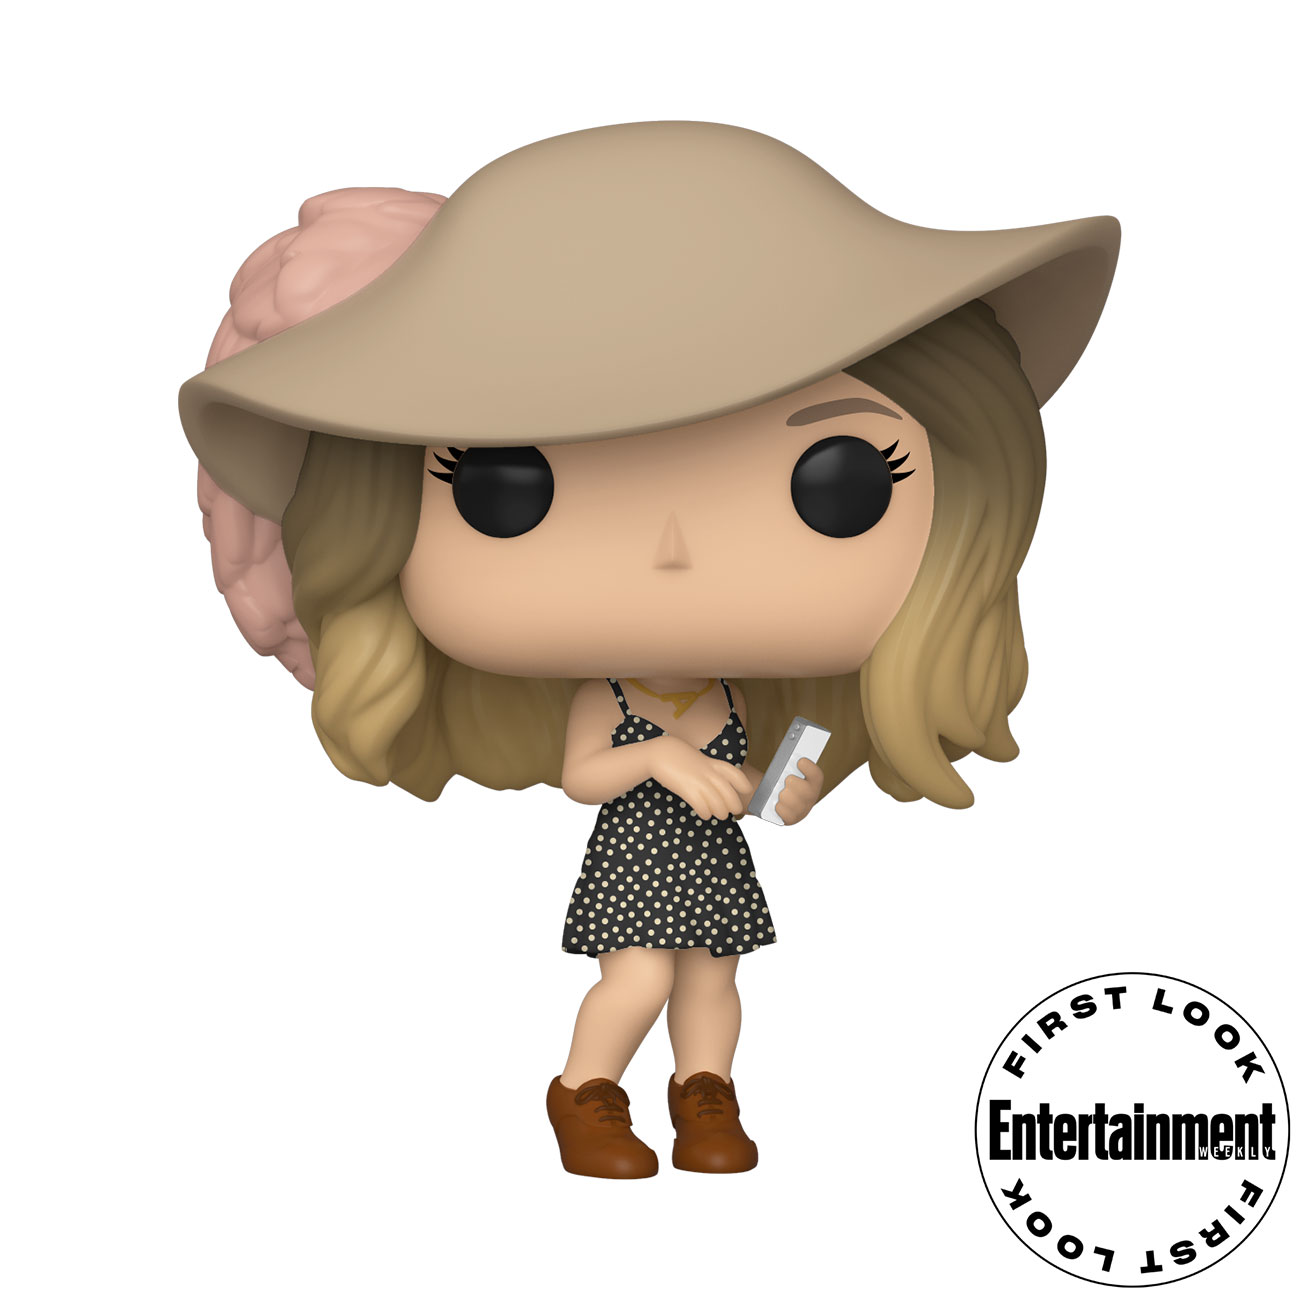 Schitt's Creek Funko Pops